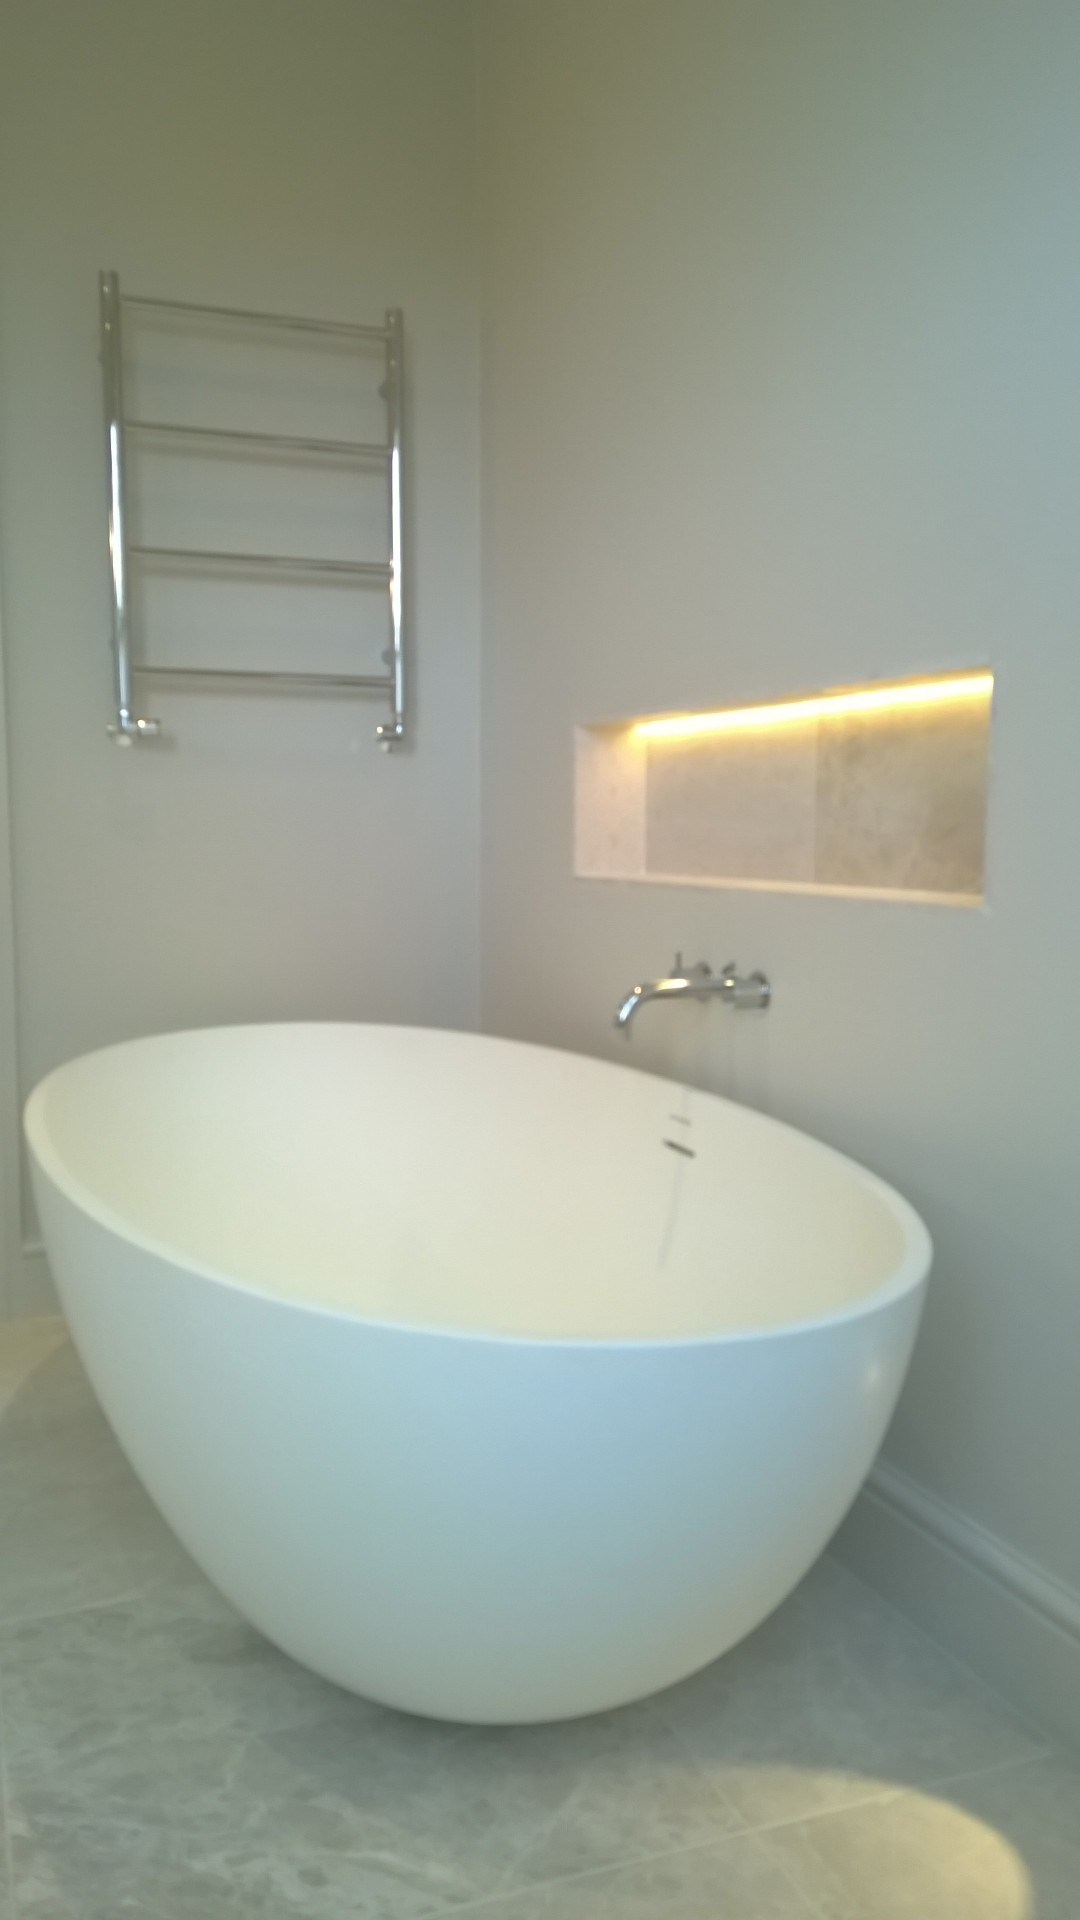 Freestanding bath and recessed shelf - London bathroomsLondon ...